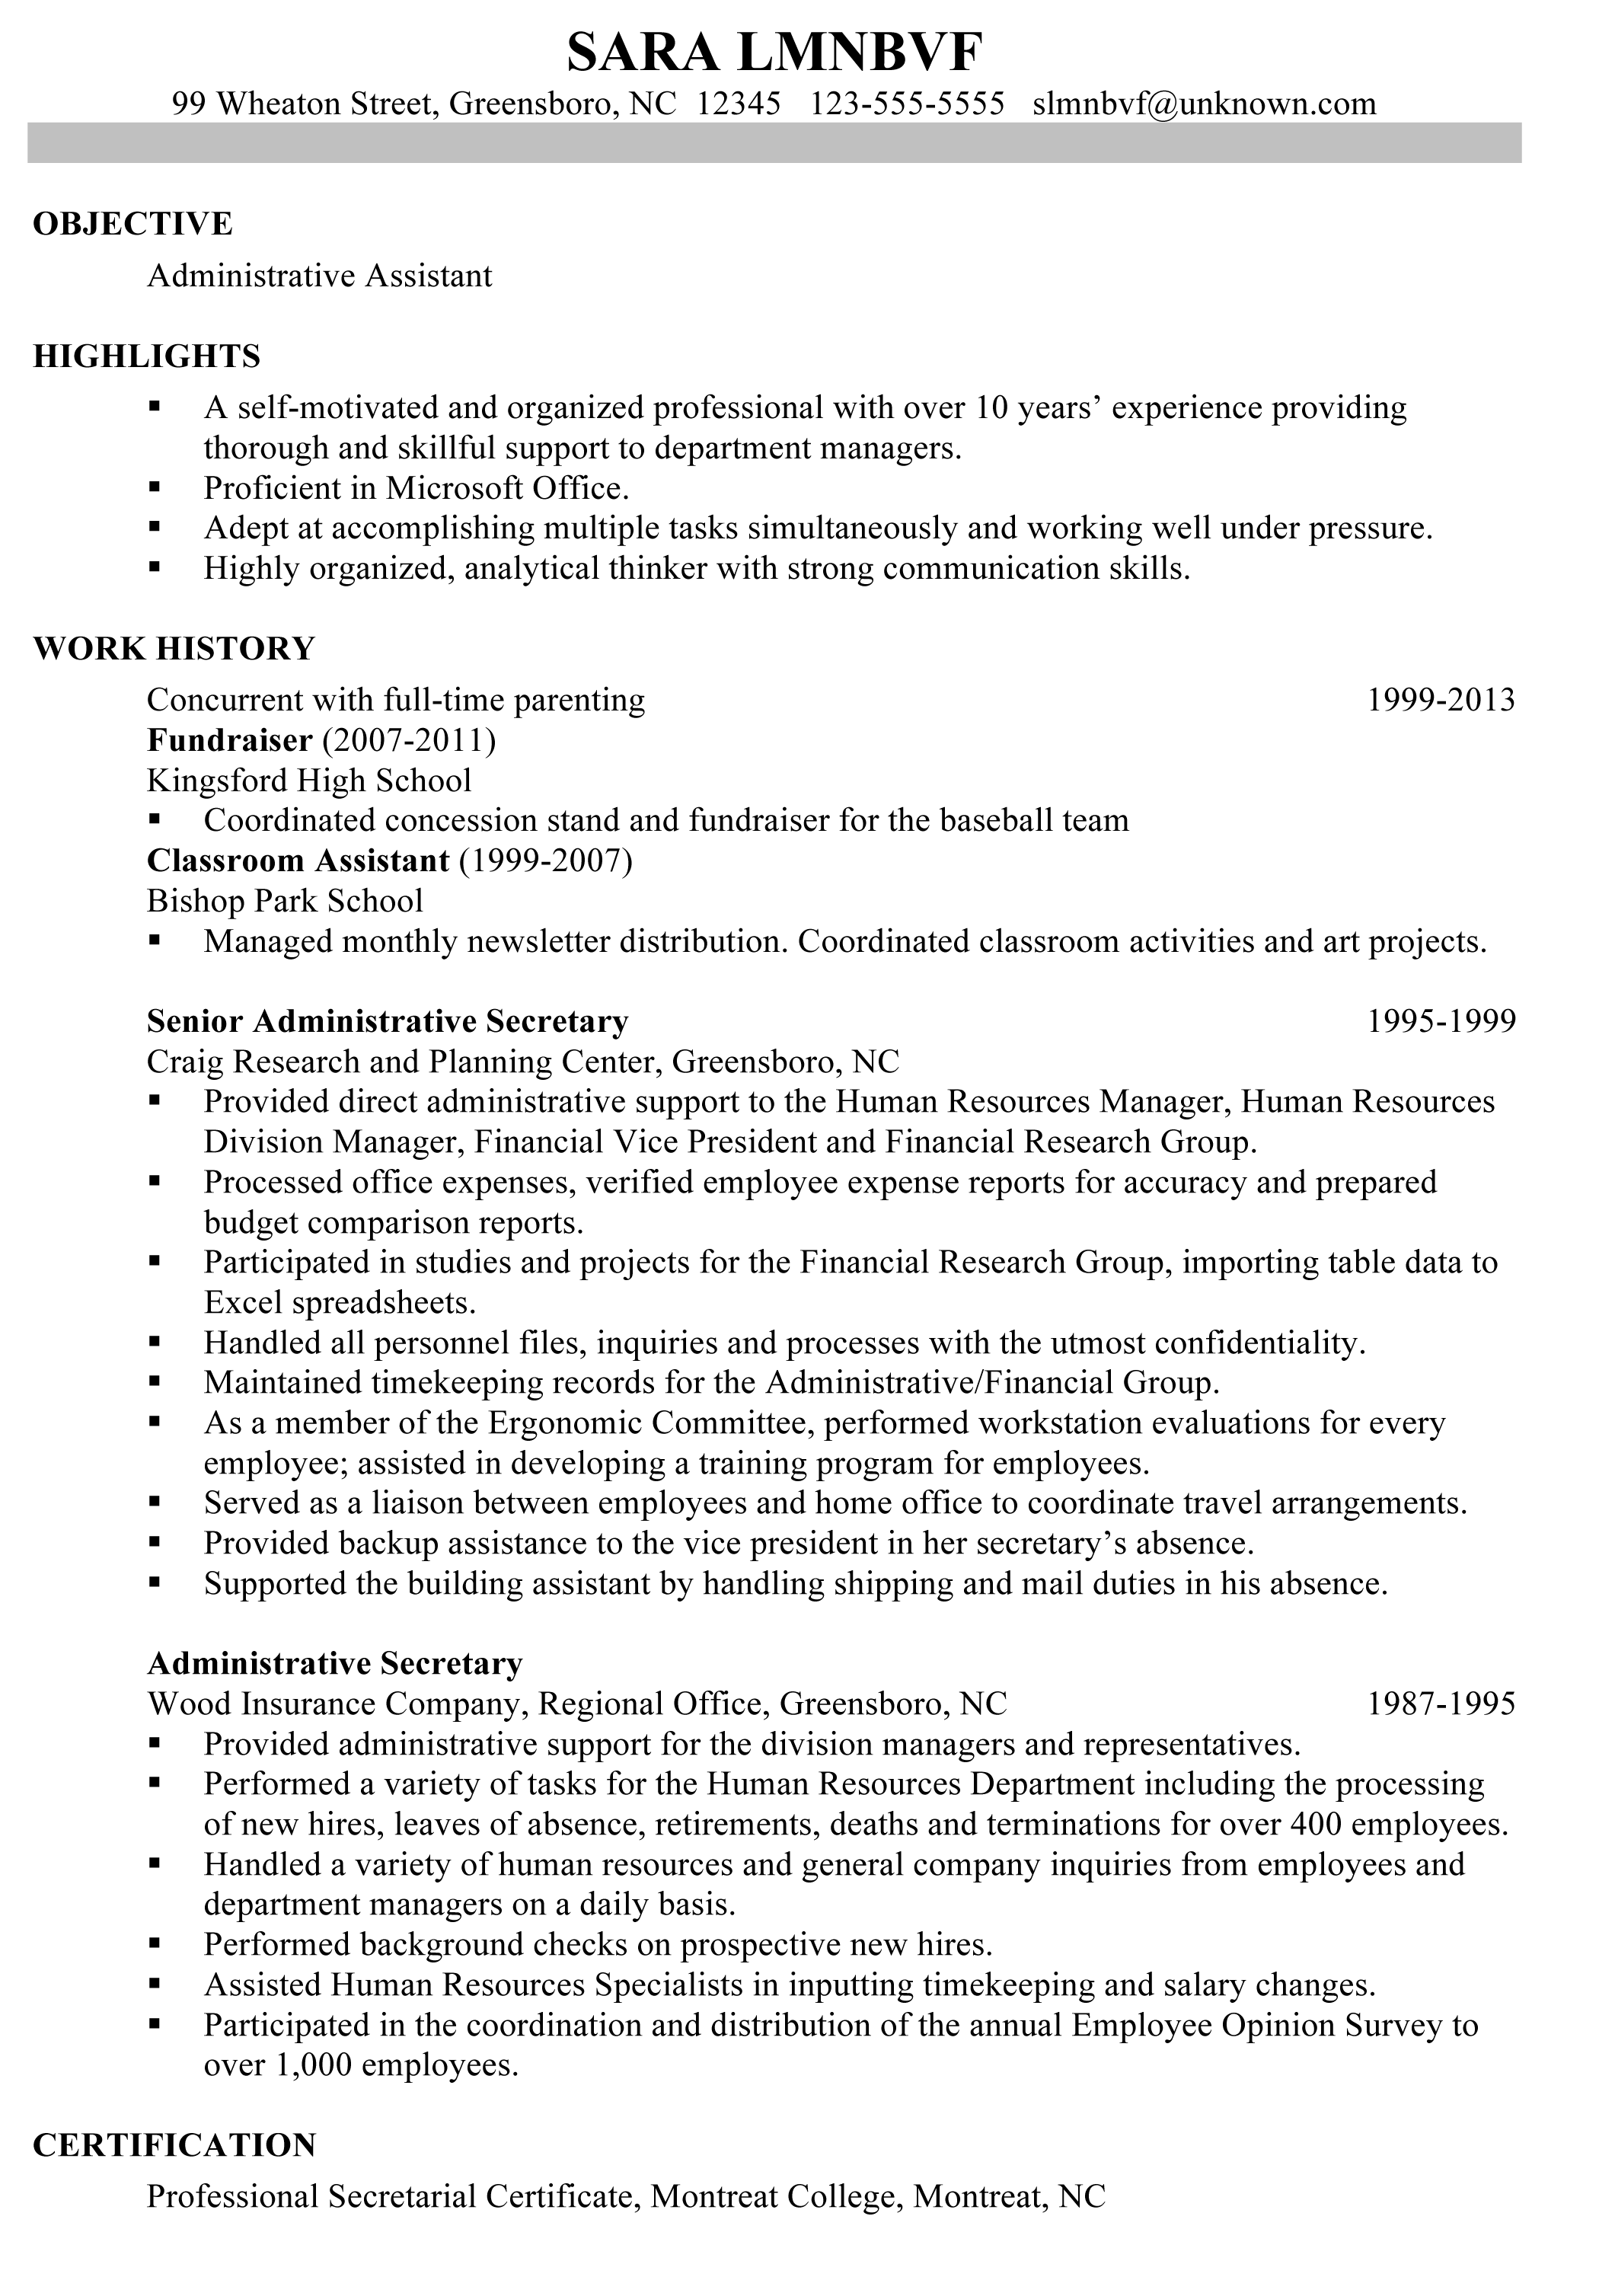 Resume Format Samples Matching Resume Cover Letter Job Reference Page Samples